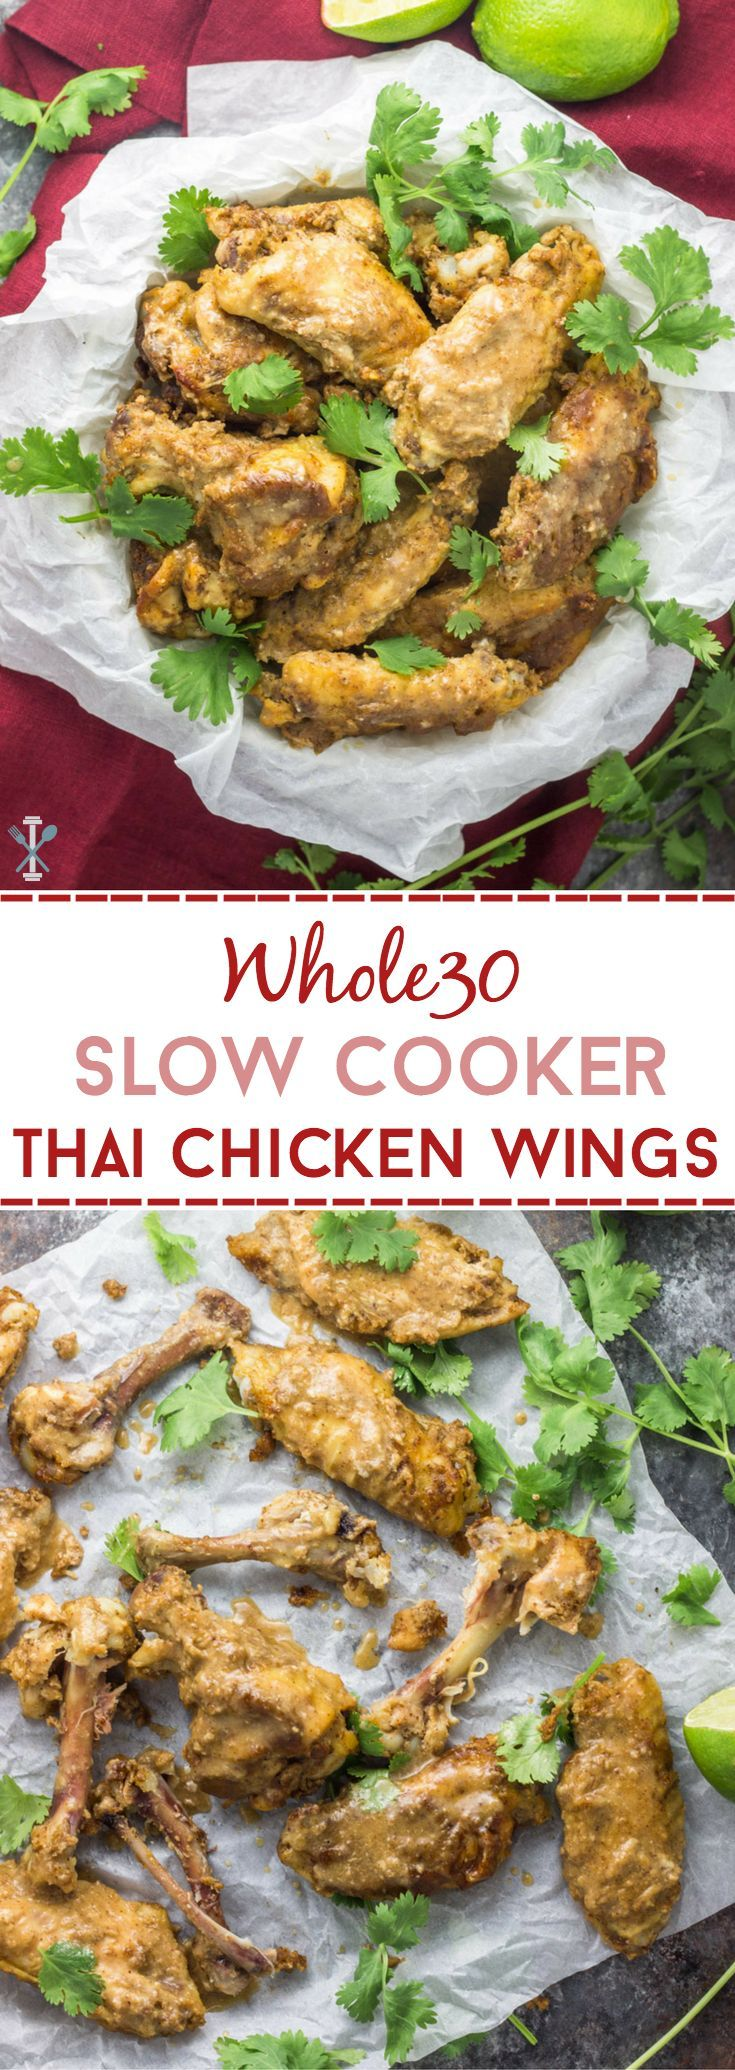 Whole30 slow cooker Thai chicken wings are the perfect 'set & forget' football snack. The perfect appetizer sure to be a crowd-pleaser!